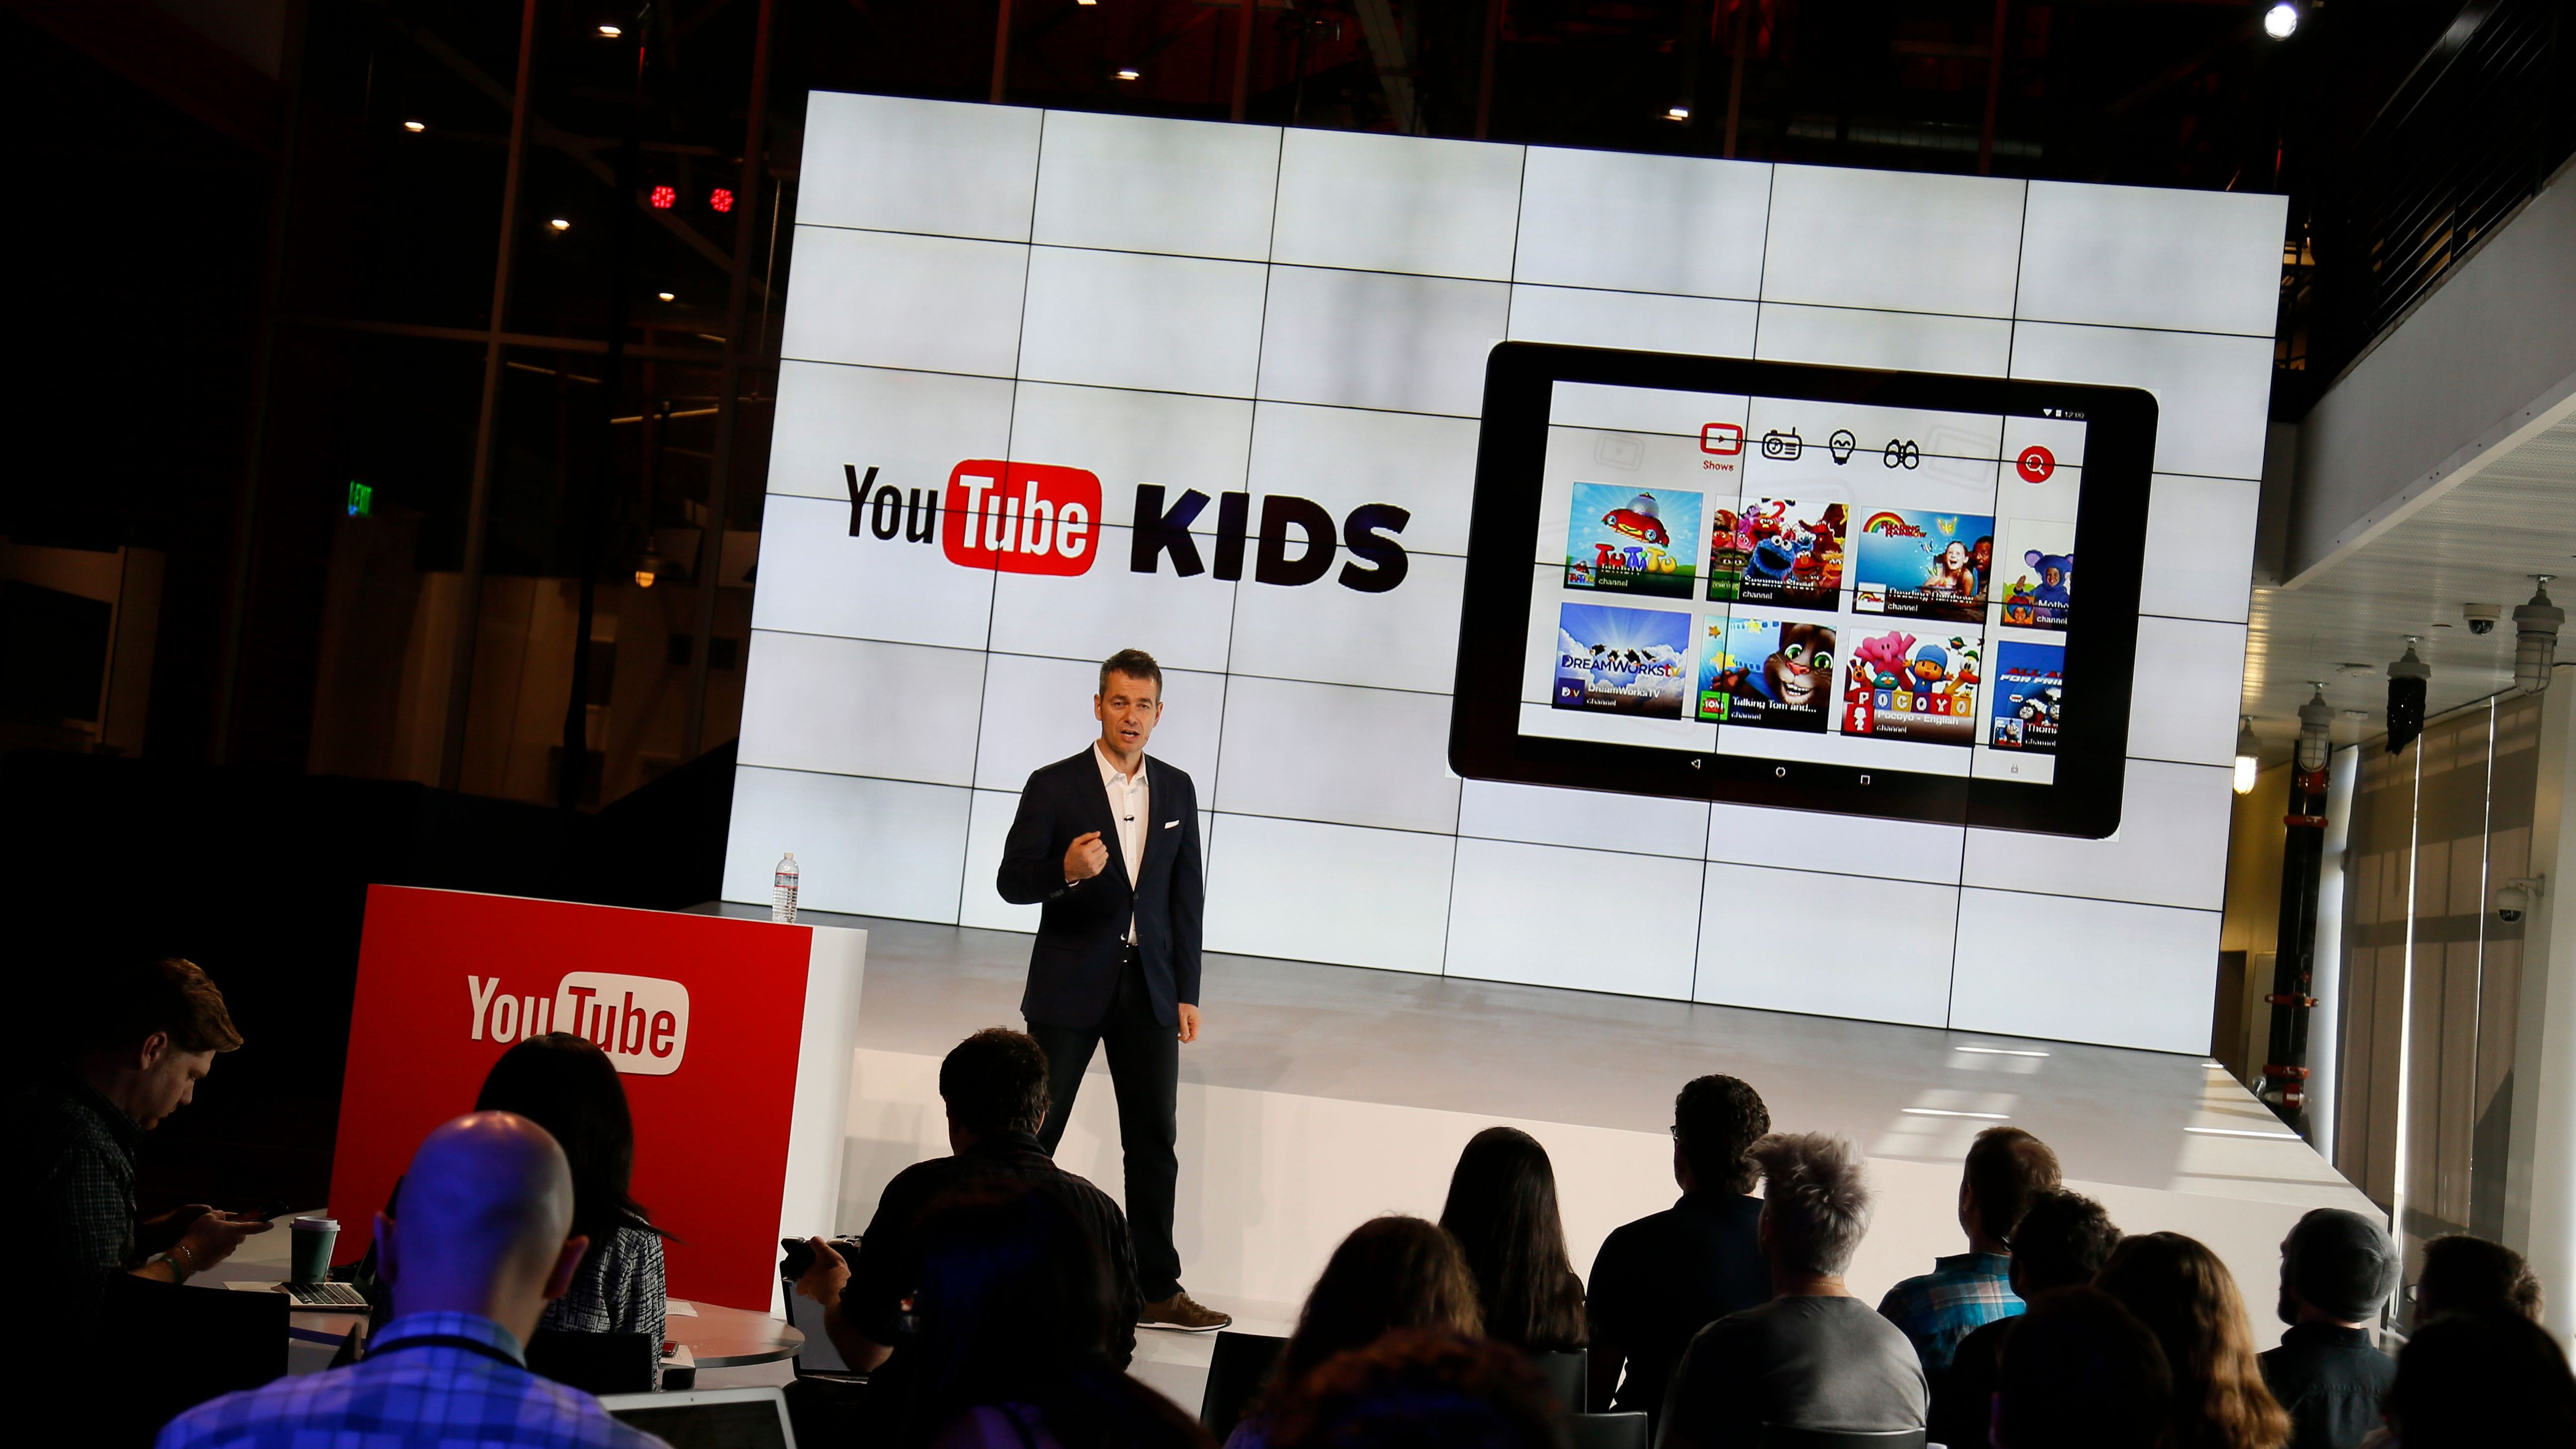 """Robert Kyncl, YouTube Chief Business Officer, speaks about YouTube Kids as YouTube unveils """"YouTube Red,"""" a new subscription service, at YouTube Space LA offices Wednesday, Oct. 21, 2015, in Los Angeles. YouTube Red combines ad-free videos, new original series and movies from top YouTubers like PewDiePie, and on-demand unlimited streaming music for $10 a month. (AP Photo/Danny Moloshok)"""